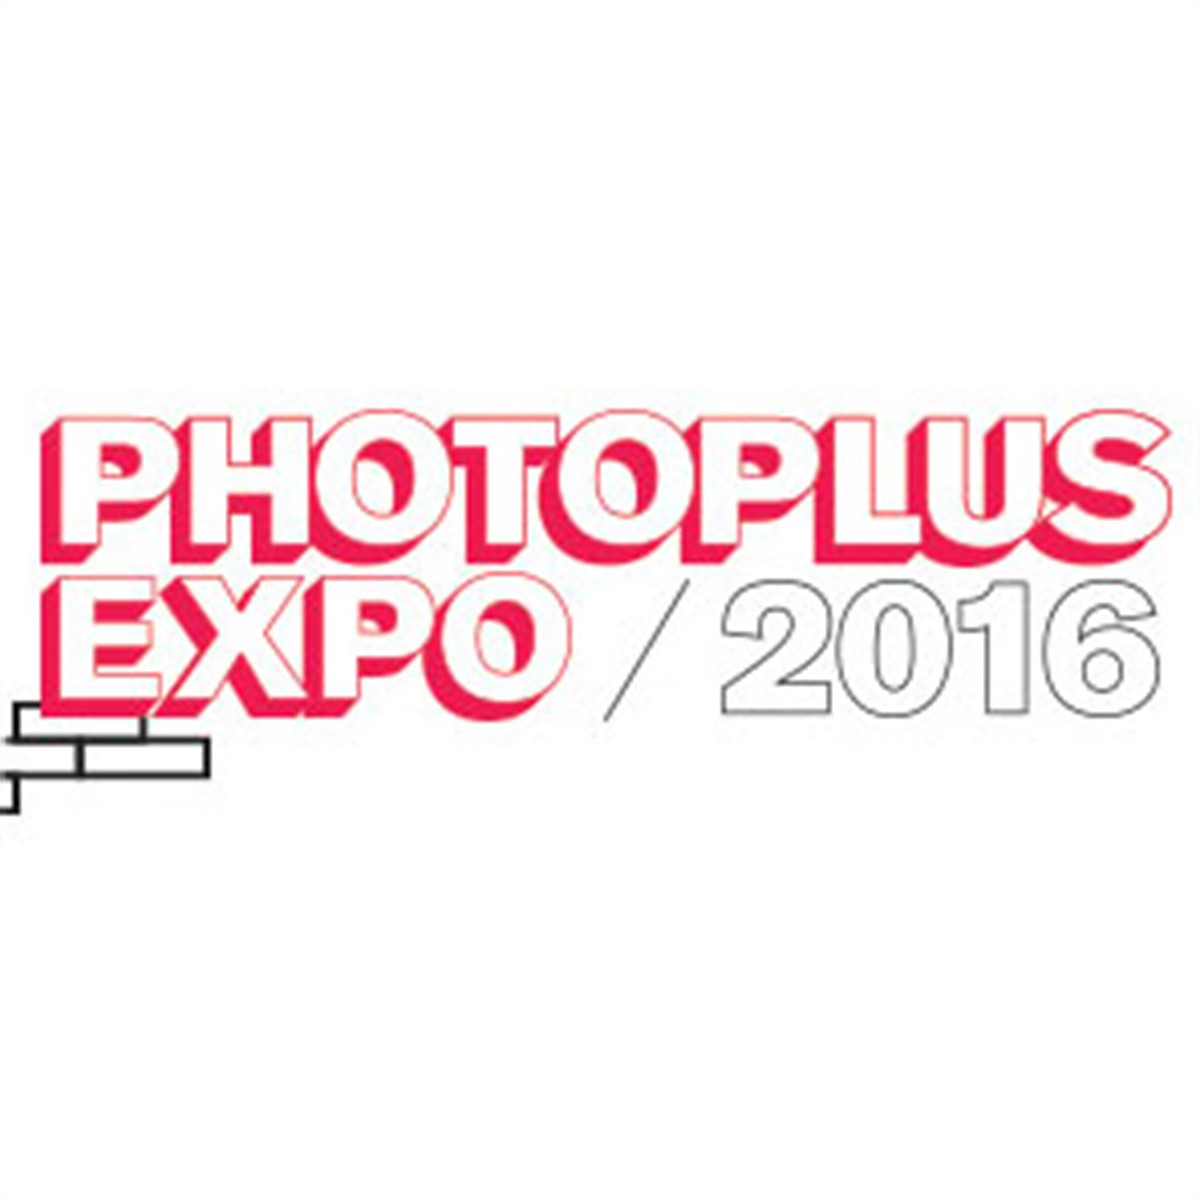 Exceptional Photo Pholus Expo 2016 To Offer Photo Walks Covering Roster Expo Canon Expo Photography Review Pholus Expo 2016 To Offer Photo Walks Covering Roster New York City Photo dpreview Photo Plus Expo